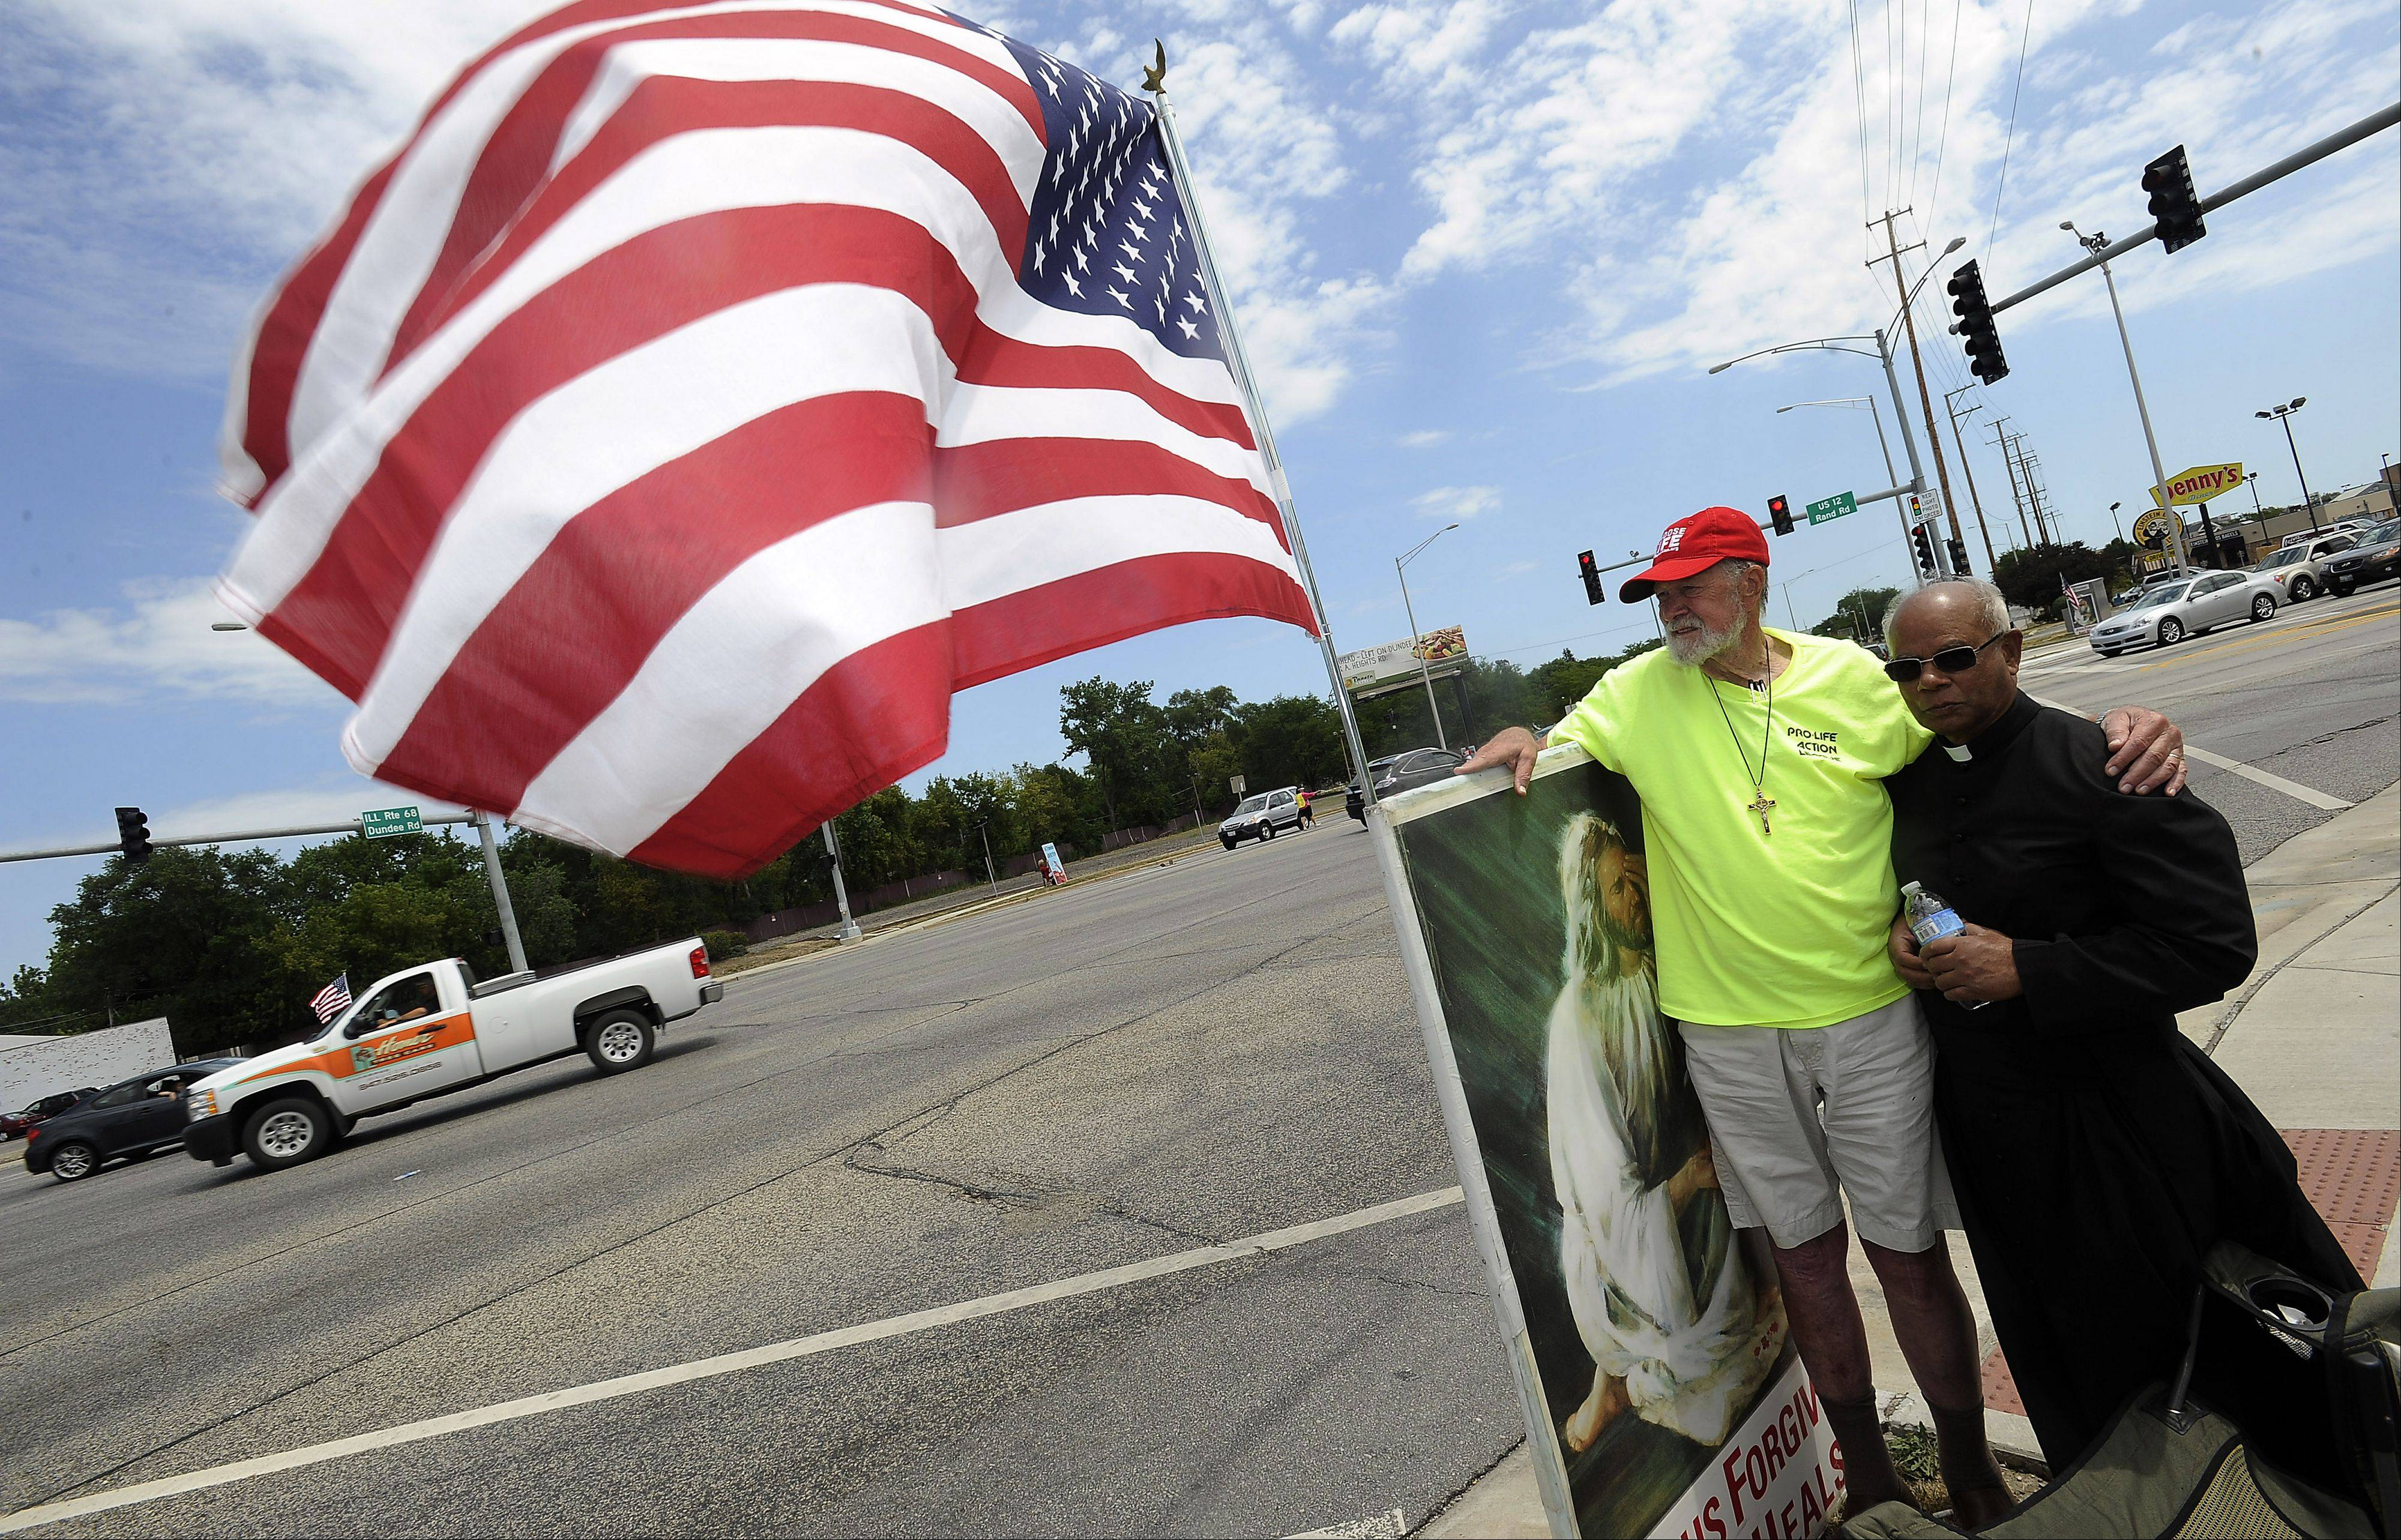 Abortion opponents Joe Scheidler of Chicago and Rev. Neville Monteiro of Lake Zurich stand at the intersection of Dundee and Rand roads in Palatine spreading their message. Lake Zurich police say they are ready for the return of the Pro-Life Action League's Face the Truth tour Thursday morning. The tour also will stop in Palatine and Arlington Heights.